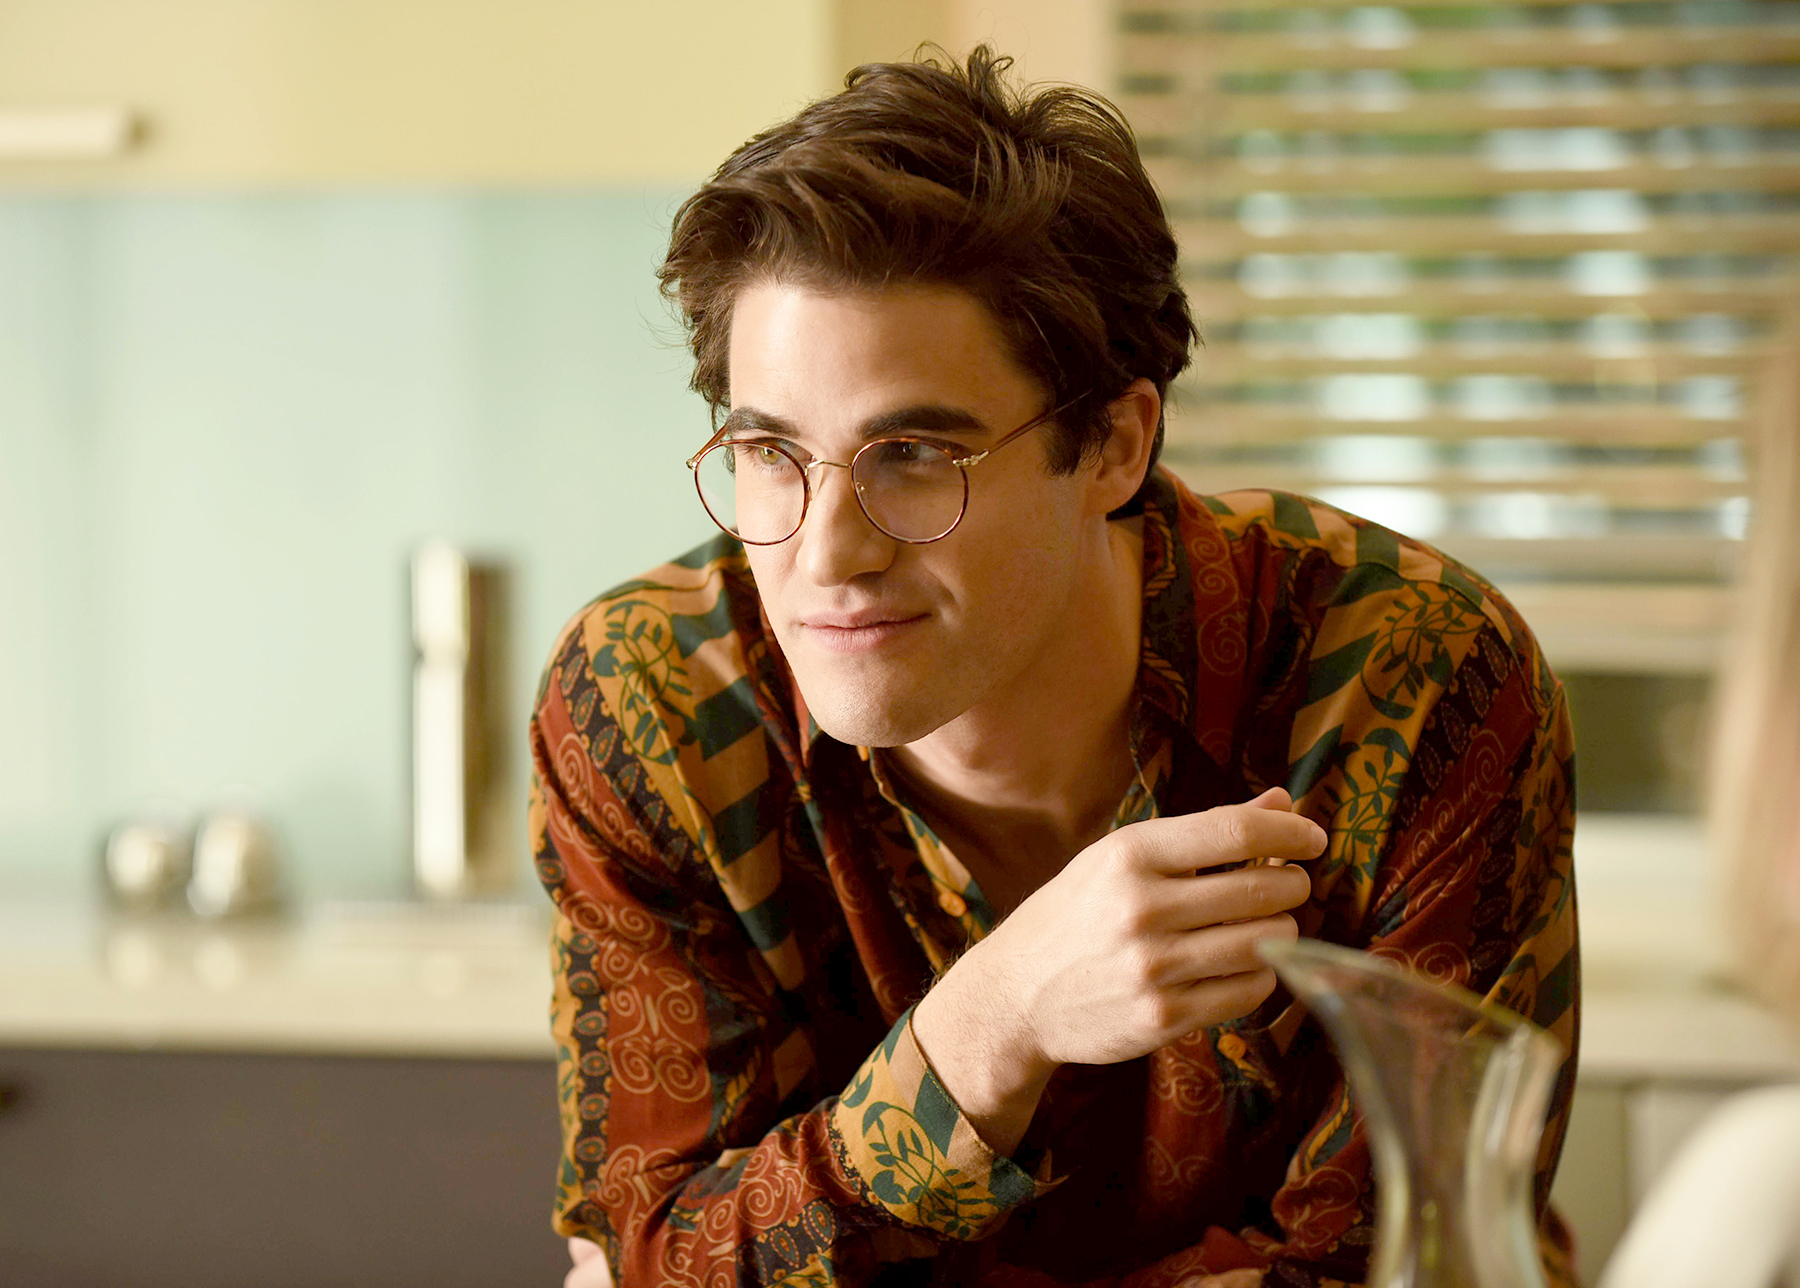 Darren-Criss-assassination - The Emmy speaks for itself. Criss took on killer Andrew Cunanan in Ryan Murphy's The Assassination of Gianni Versace: American Crime Story without missing a beat.